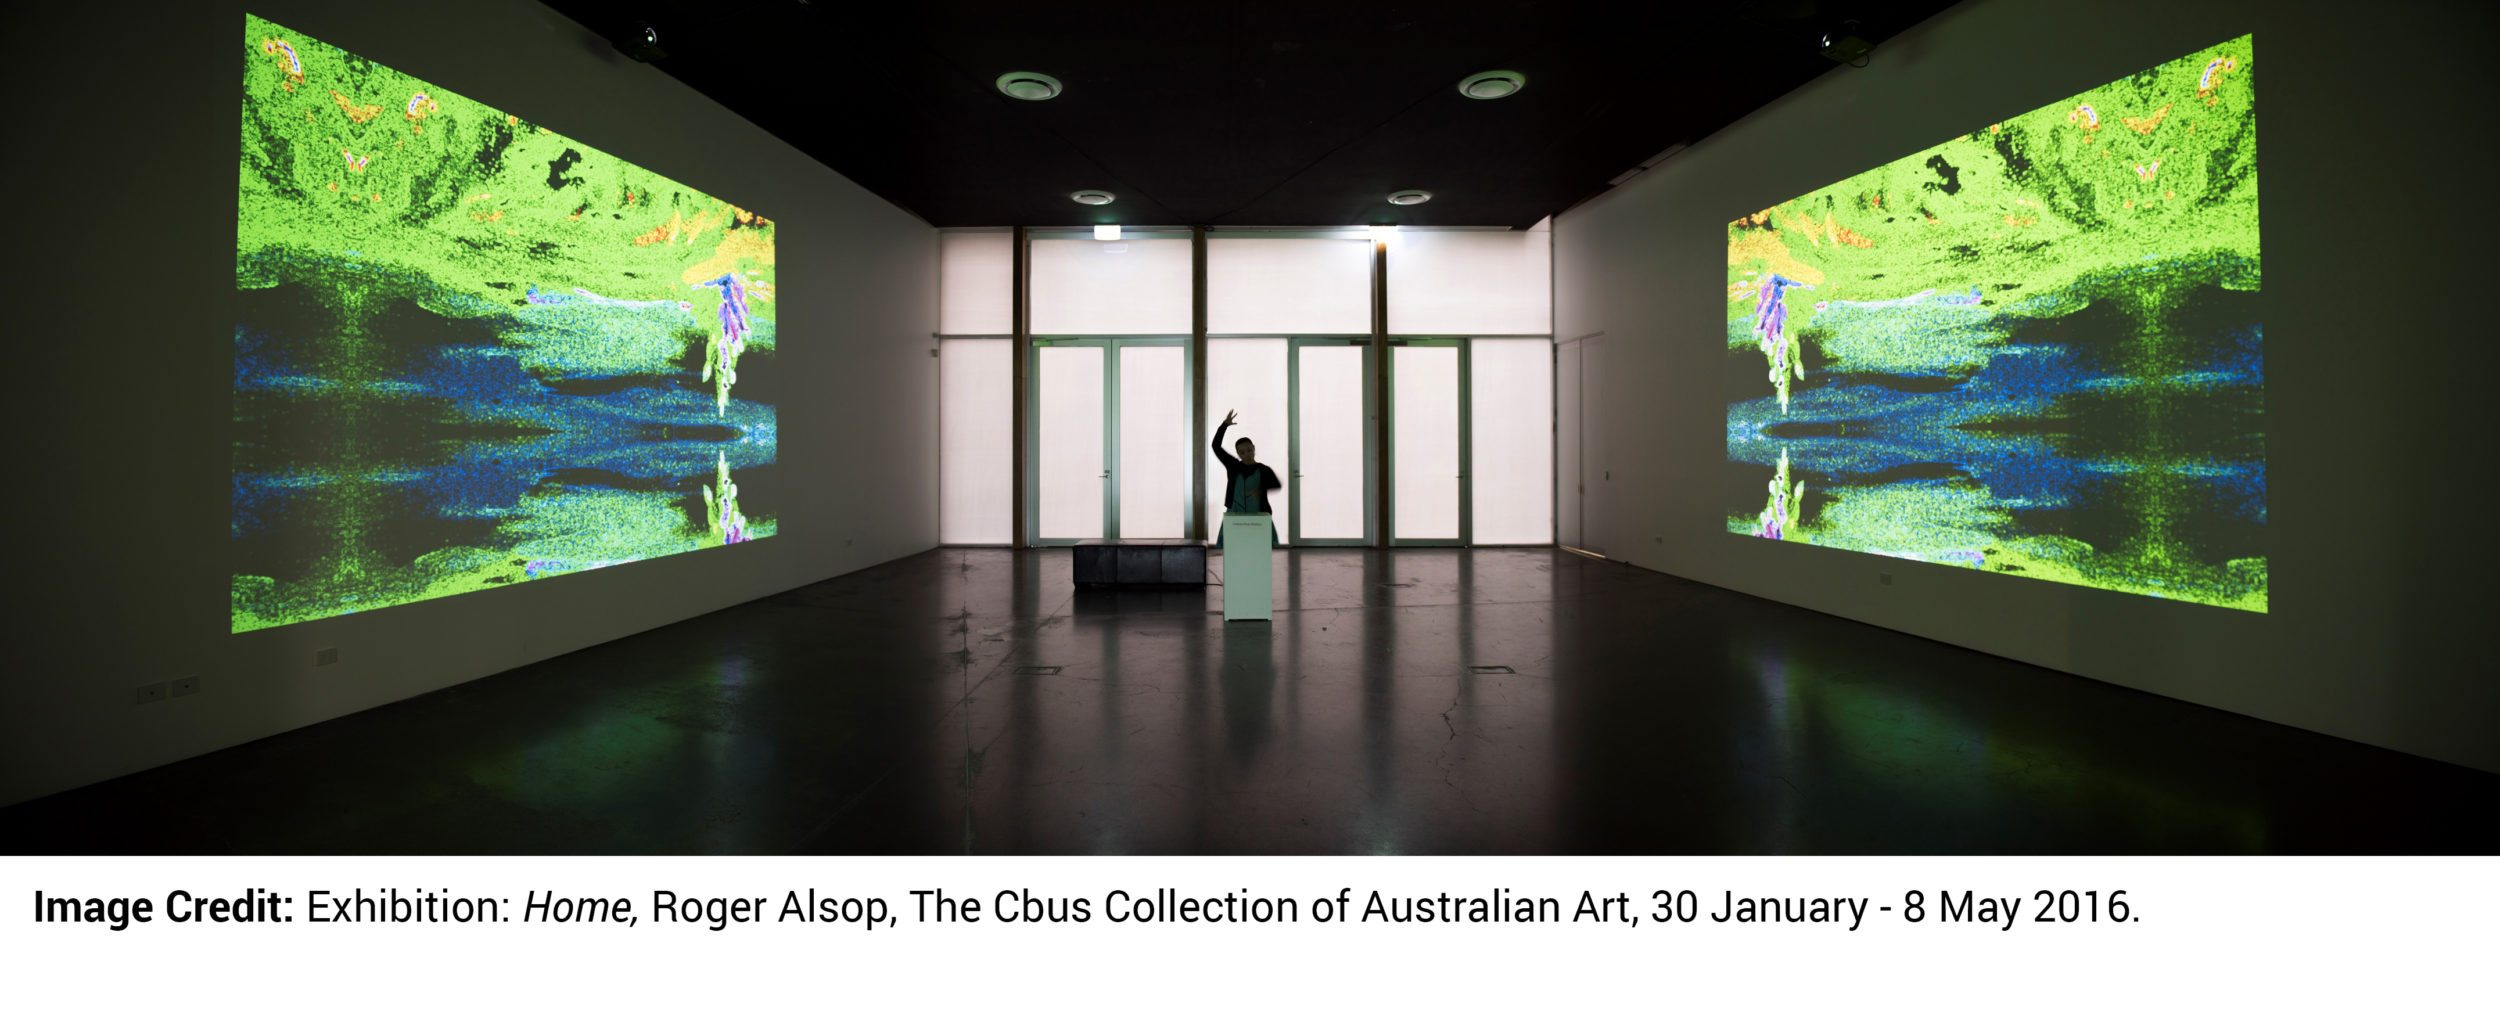 Image Credit: Exhibition: Home, Roger Alsop, The Cbus Collection of Australian Art, 30 January - 8 May 2016.